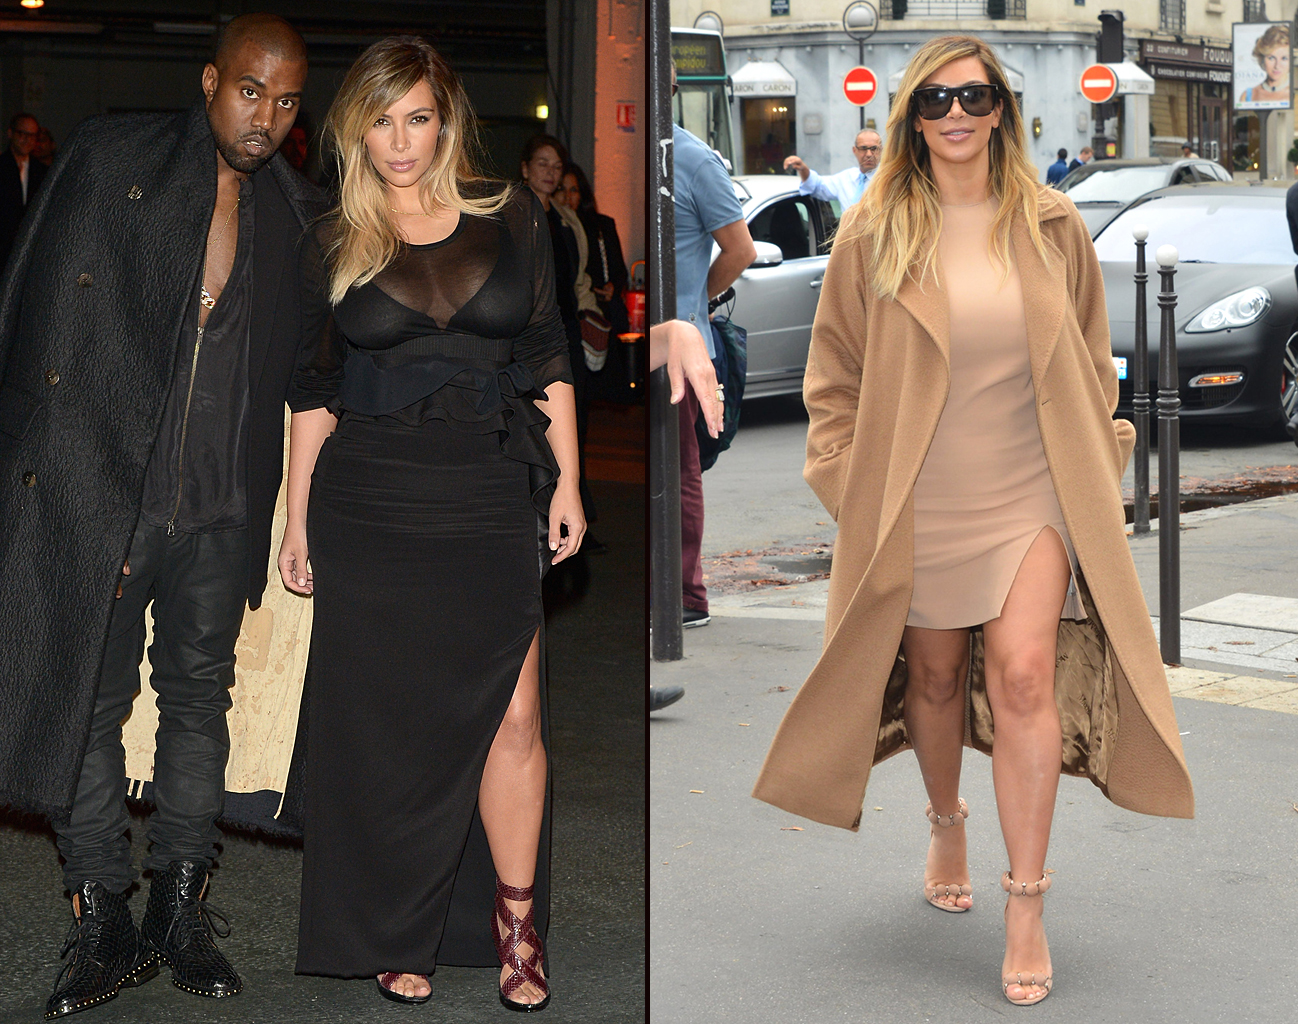 Kim and Kanye head to Givenchy / Kim looks leggy and gorgeous strolling around Paris (WireImage/PacificCoastNews)